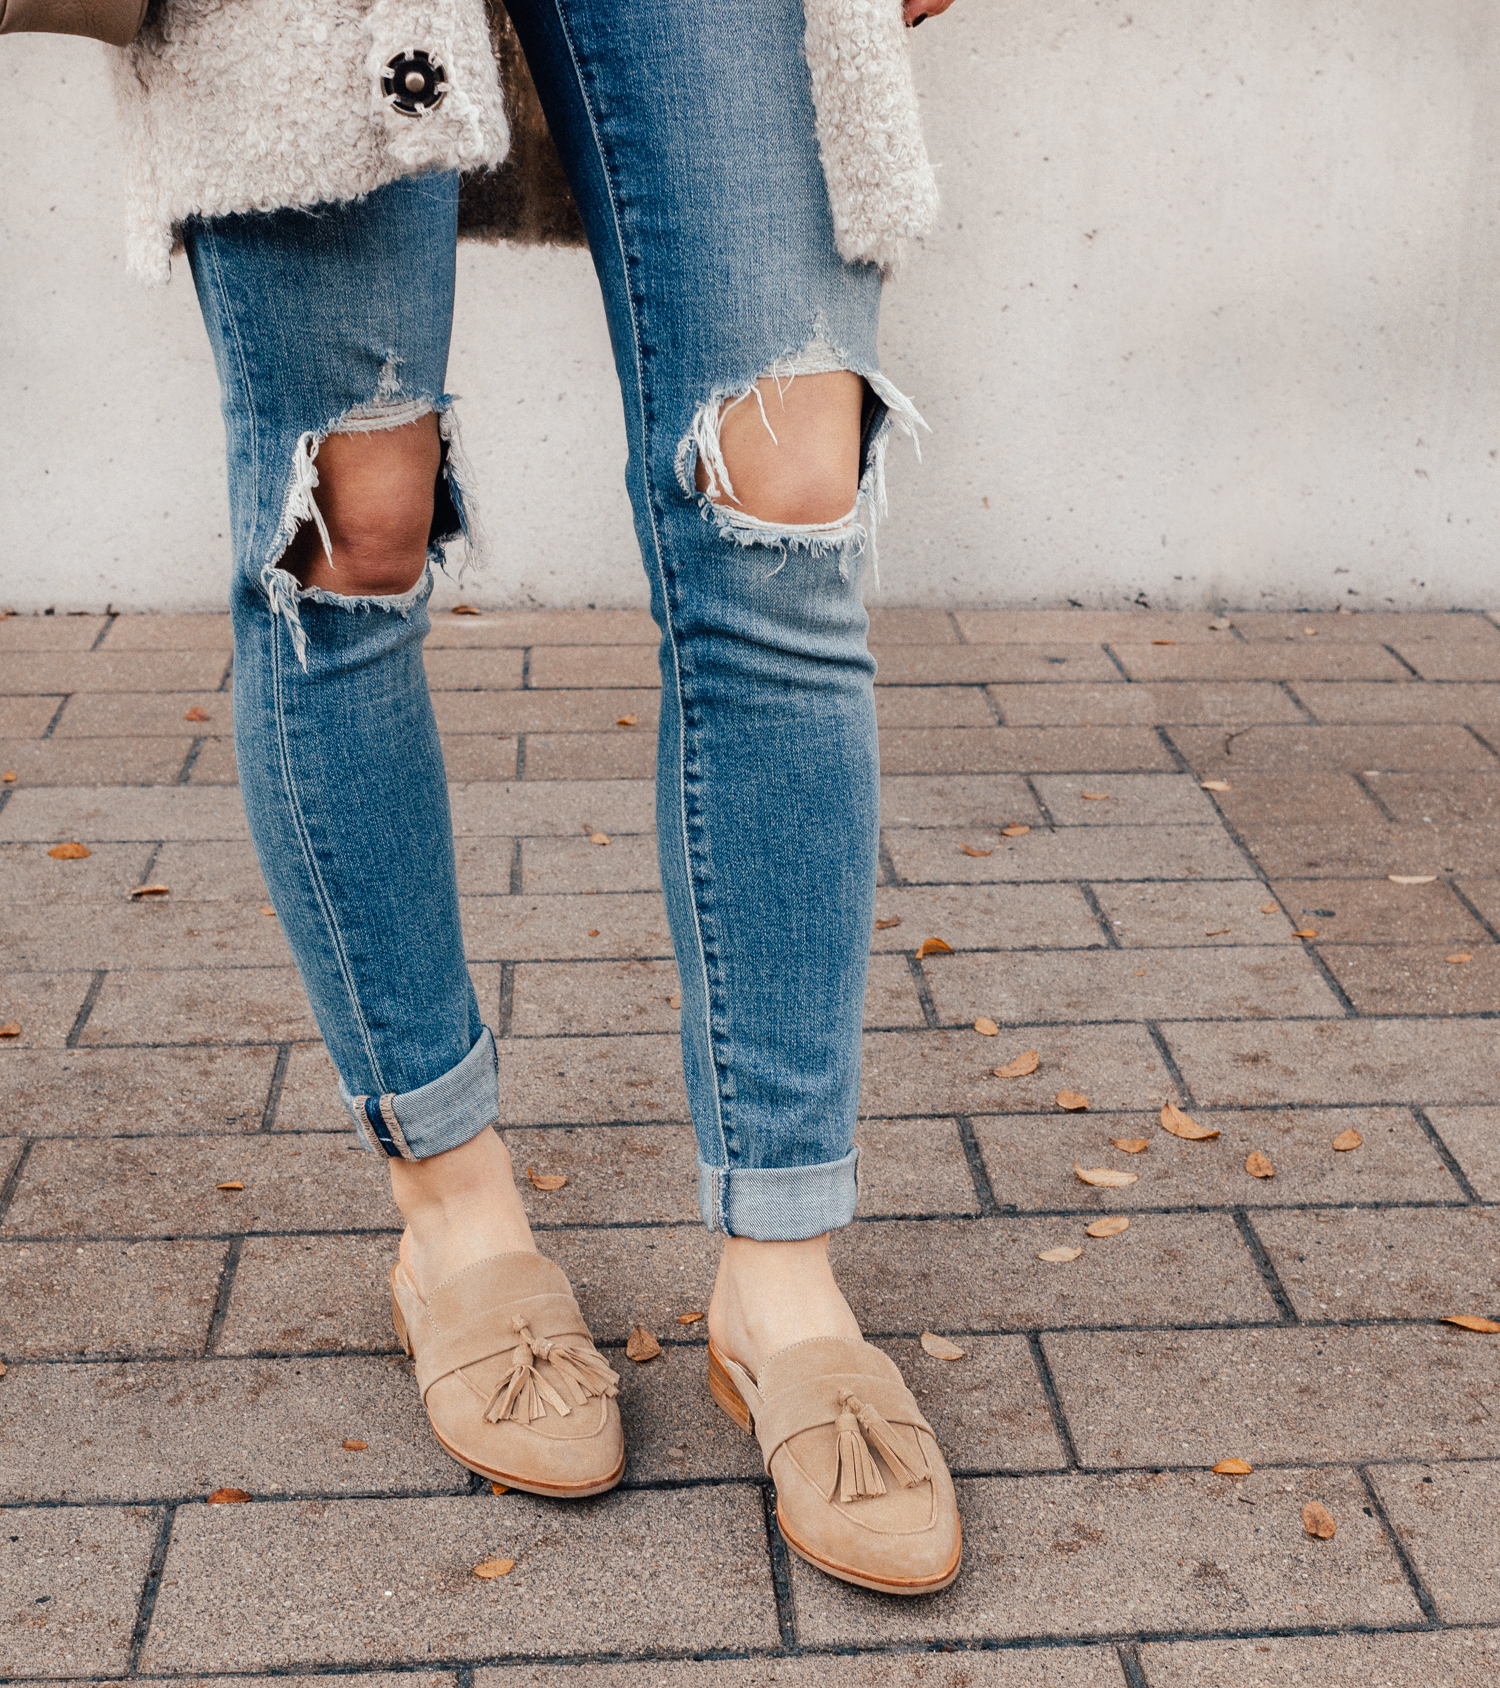 livvyland-blog-olivia-watson-free-people-blush-beige-tan-sweater-tassel-slides-cozy-layers-steve-madden